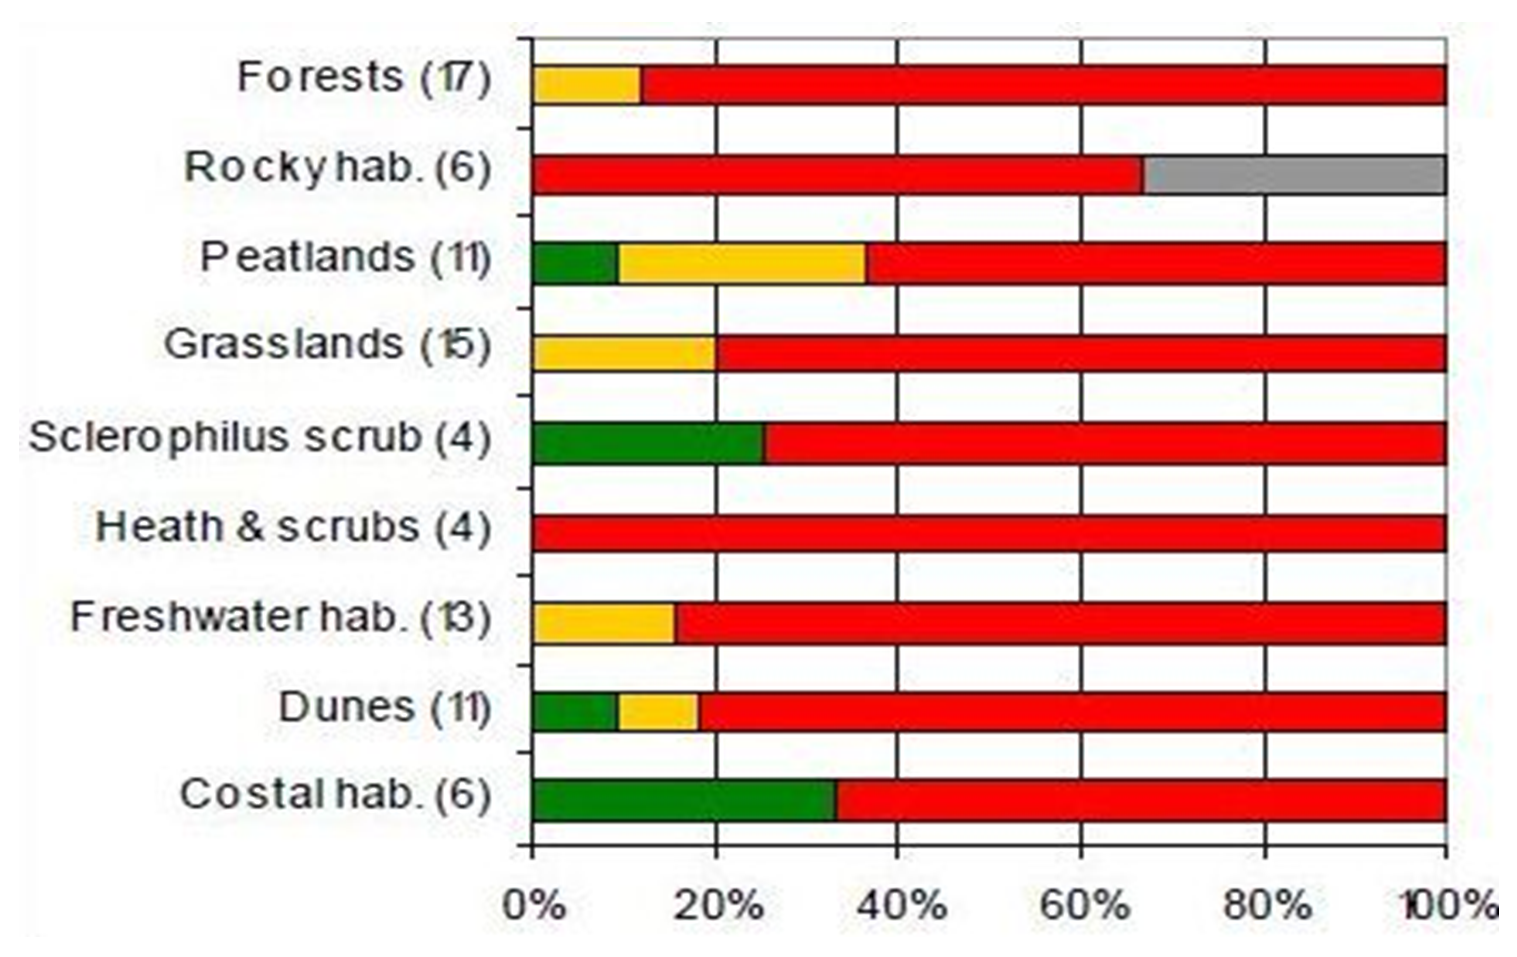 Figure 6. Overall assessment of conservation status by habitat category (%) (2001-2006).